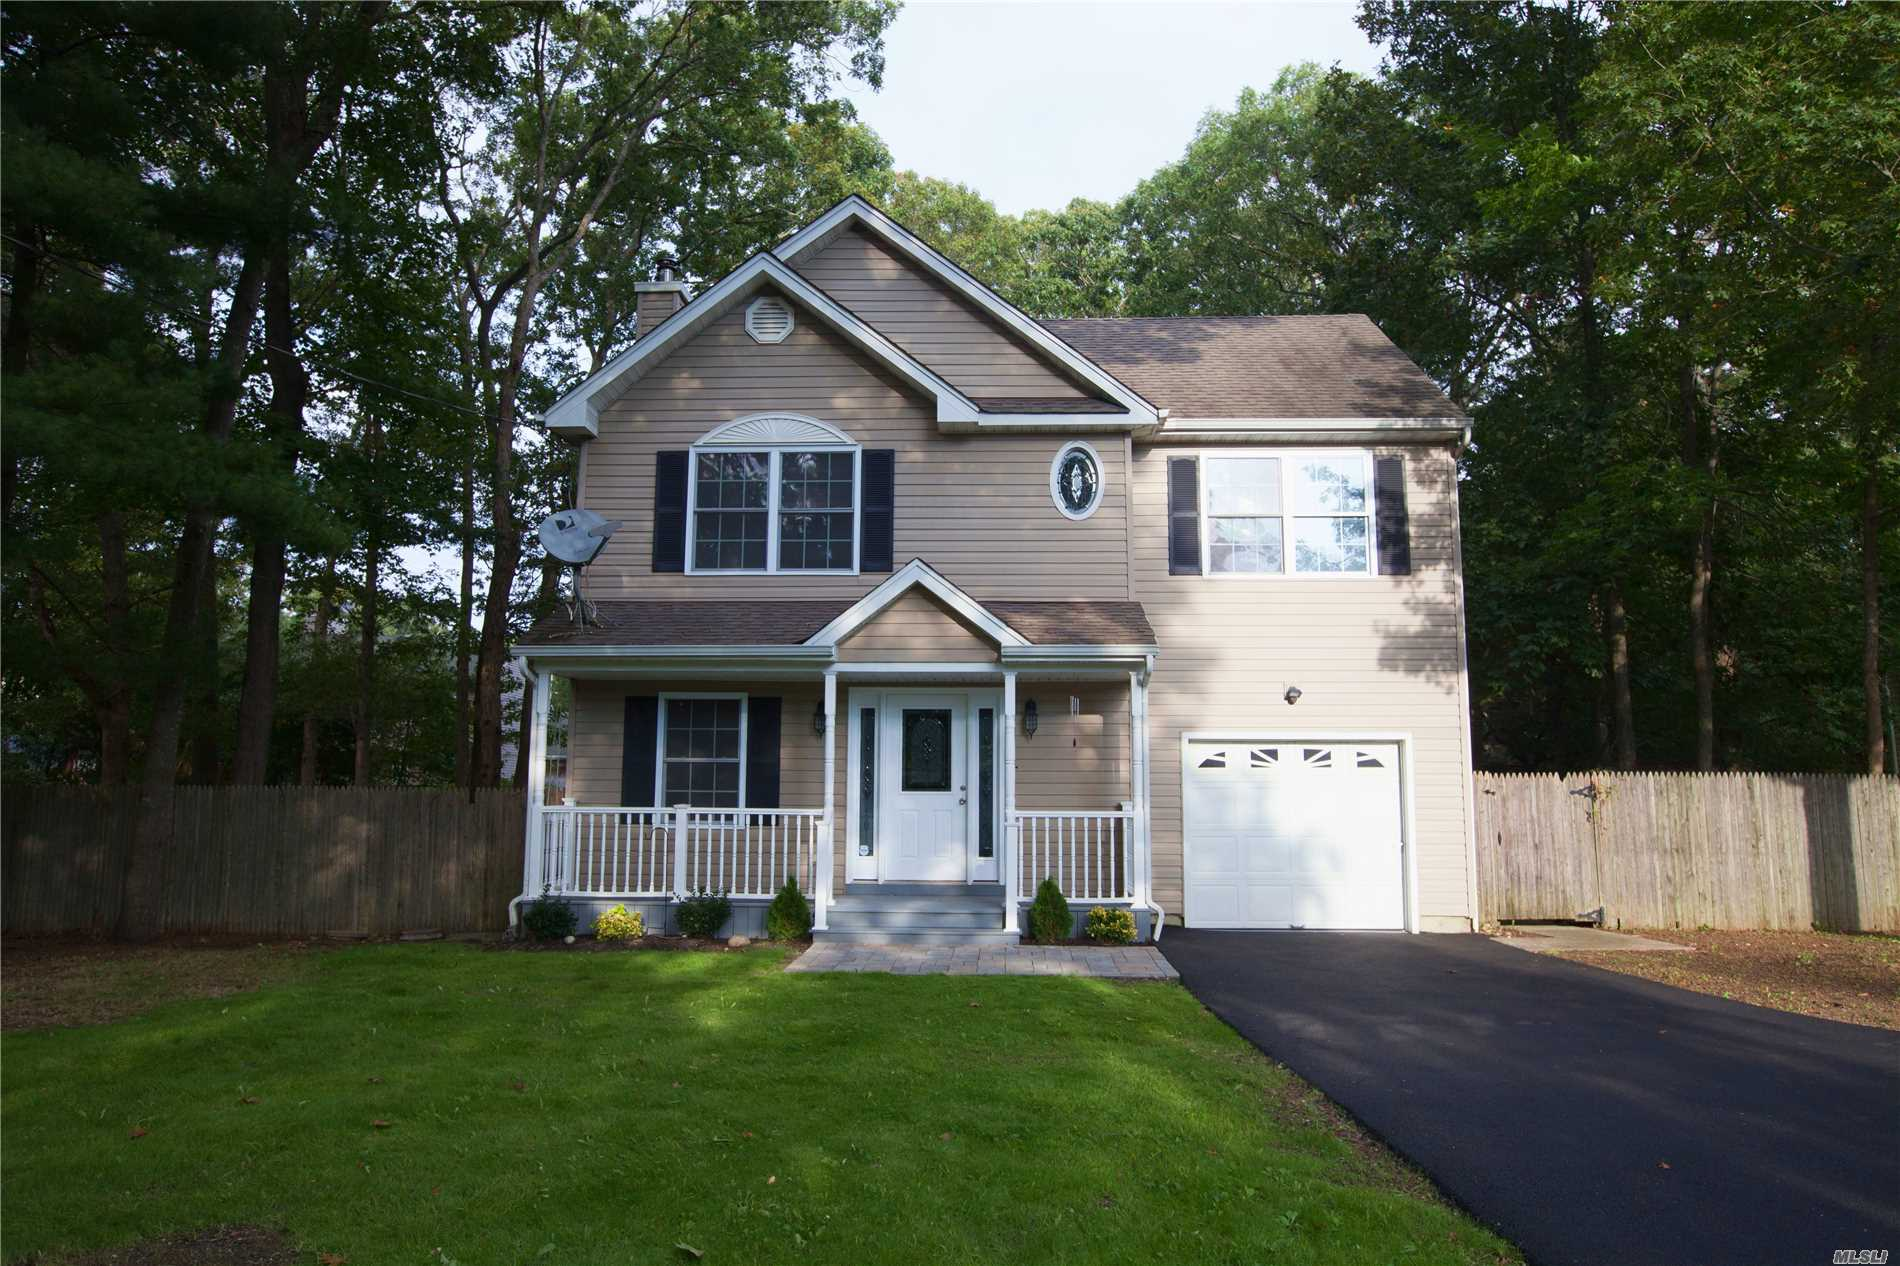 Fully Renovated Colonial On Cul-De-Sac Near Jr High & High School.Not A Flood Zone Full Front Porch, Turn Key Ready To Move In! Beautiful New Hardwood Floors Throughout, Brand New Kitchen & Appliances, Brand New Bathrooms, New Windows, New Light Fixtures Throughout, Beautiful Master Bedroom With Wic. Large Storage Space In Attic. Brand New Oil Furnace Just Installed. Attached Garage With Entrance To Kitchen. First Floor Bedroom Or Home Office With Lovely French Doors. New Blacktop Driveway